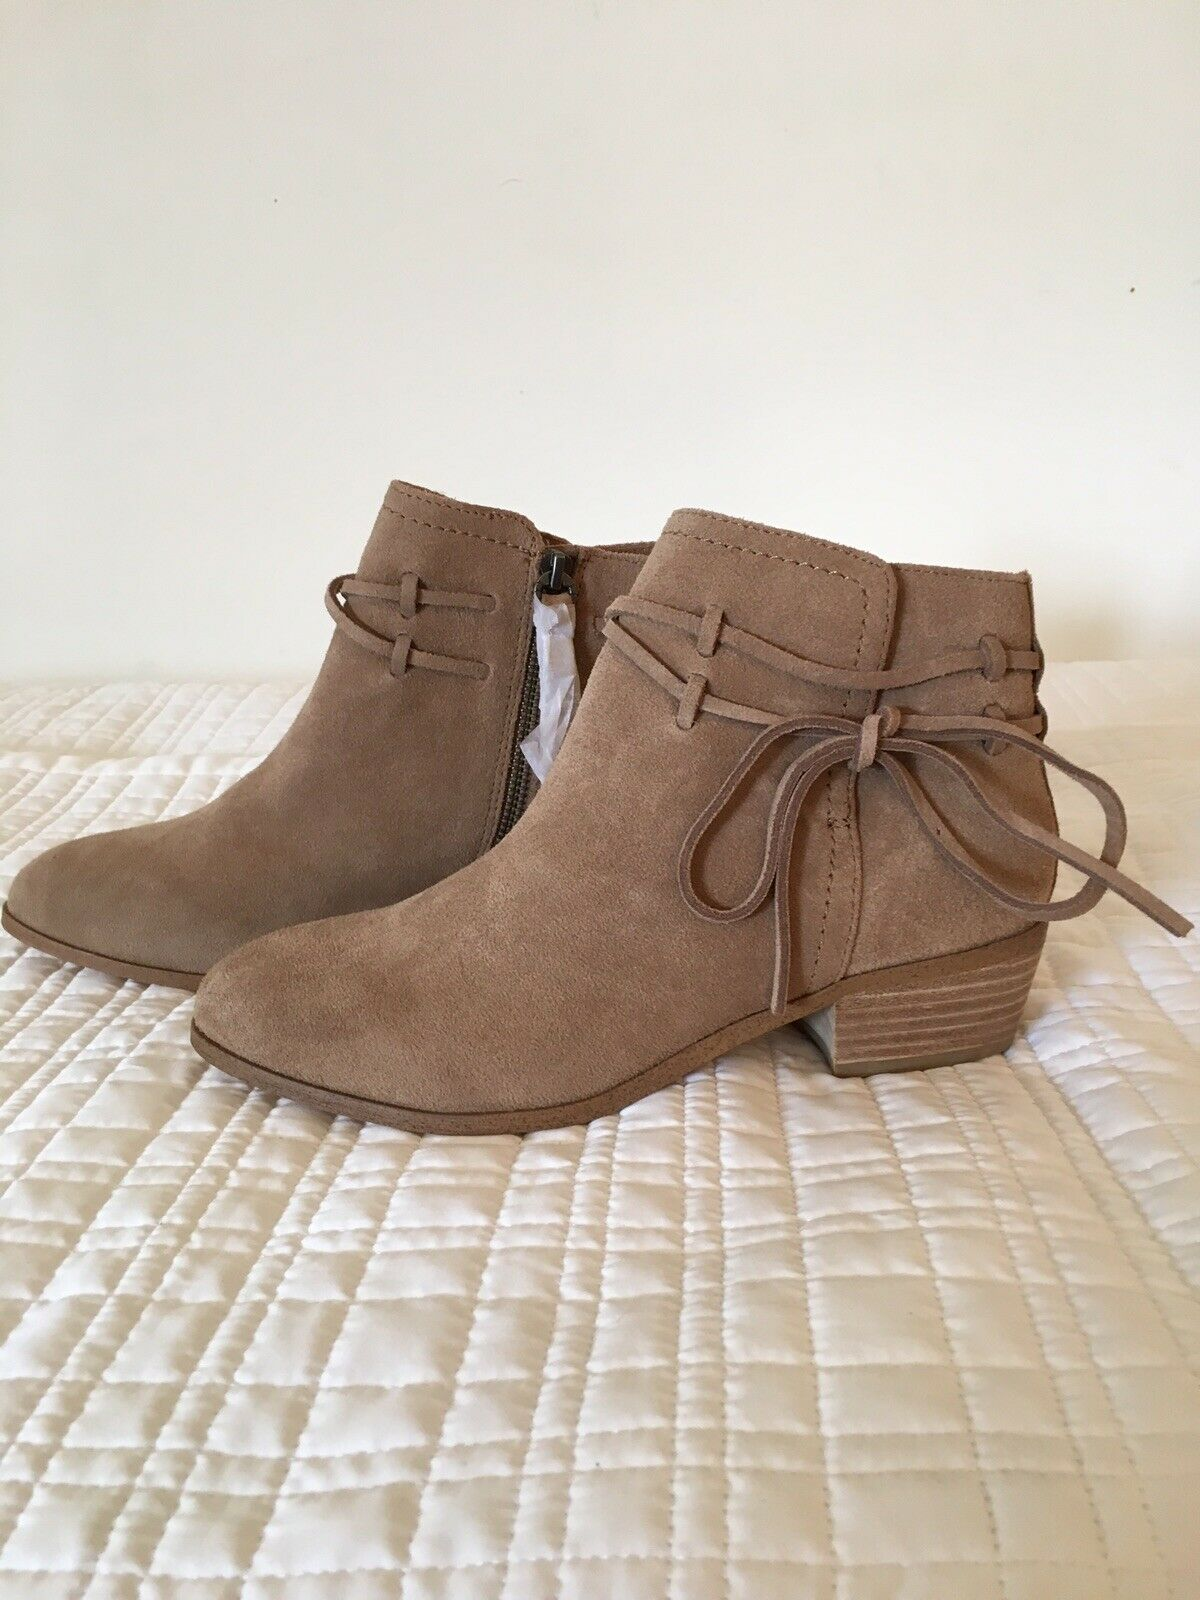 Splendid Womens Size 7 Rhoda Suede Ankle Booties Brand New